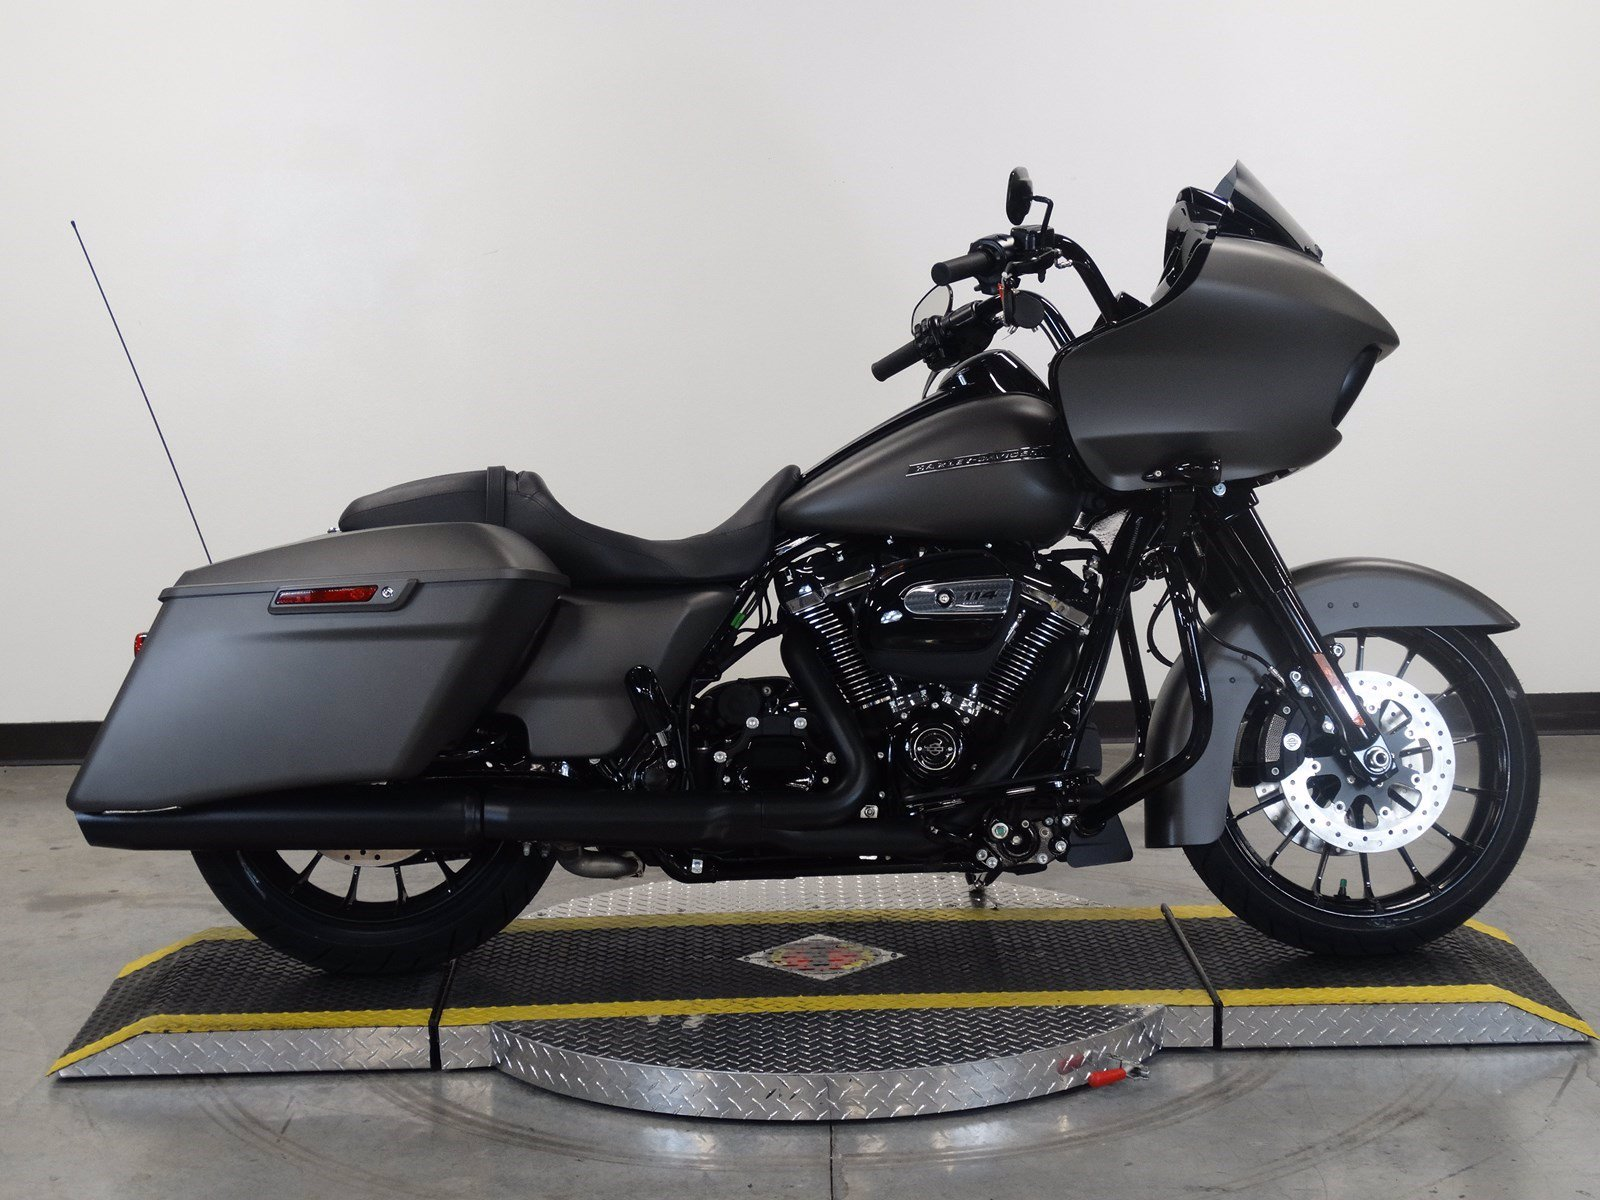 New 2019 Harley-Davidson Road Glide Special FLTRXS Touring